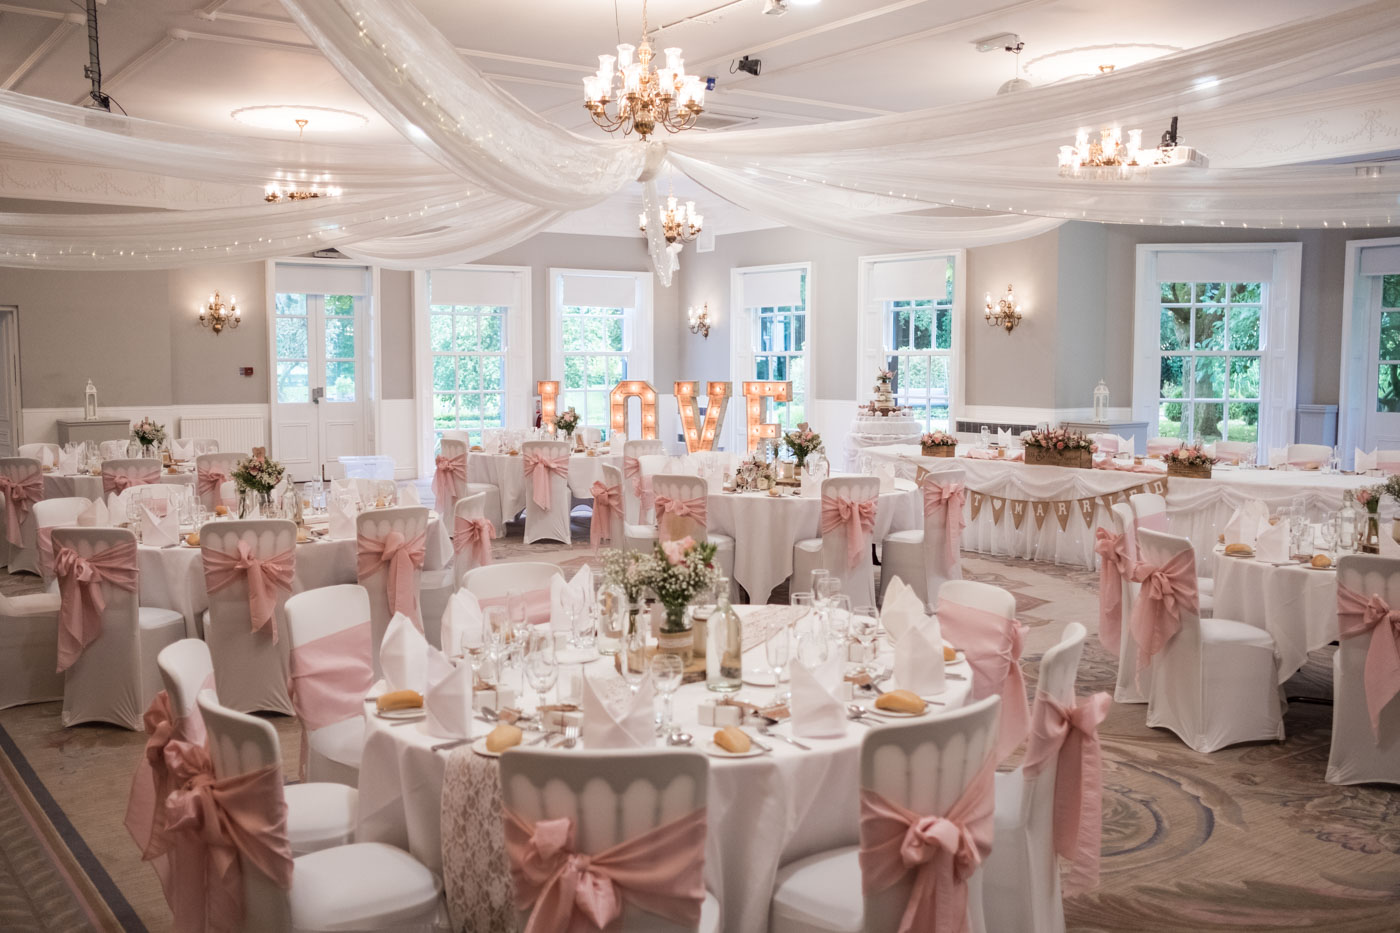 room details at statham lodge, rustic wedding decor with a touch of pink